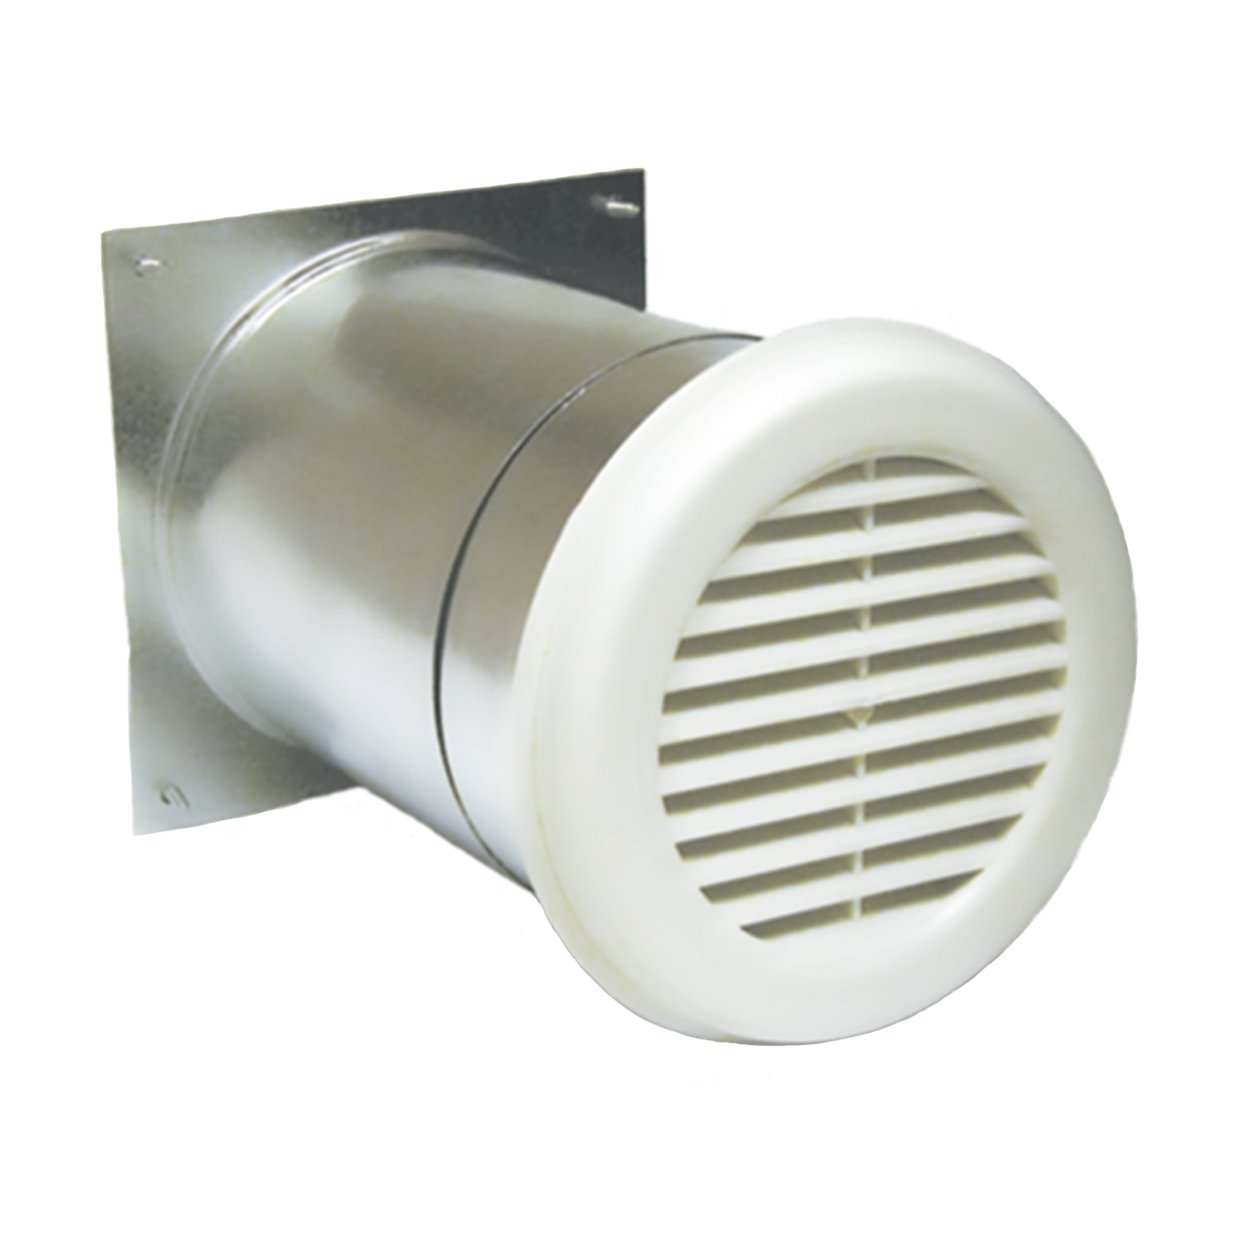 """AIRLET 200 Fresh Air Inlet with Aluminum Exterior Grille (5""""-9"""" Telescoping Sleeve) - Passive Filtered Fresh Air Inlet For Make Up Air by ALDES (Image #1)"""